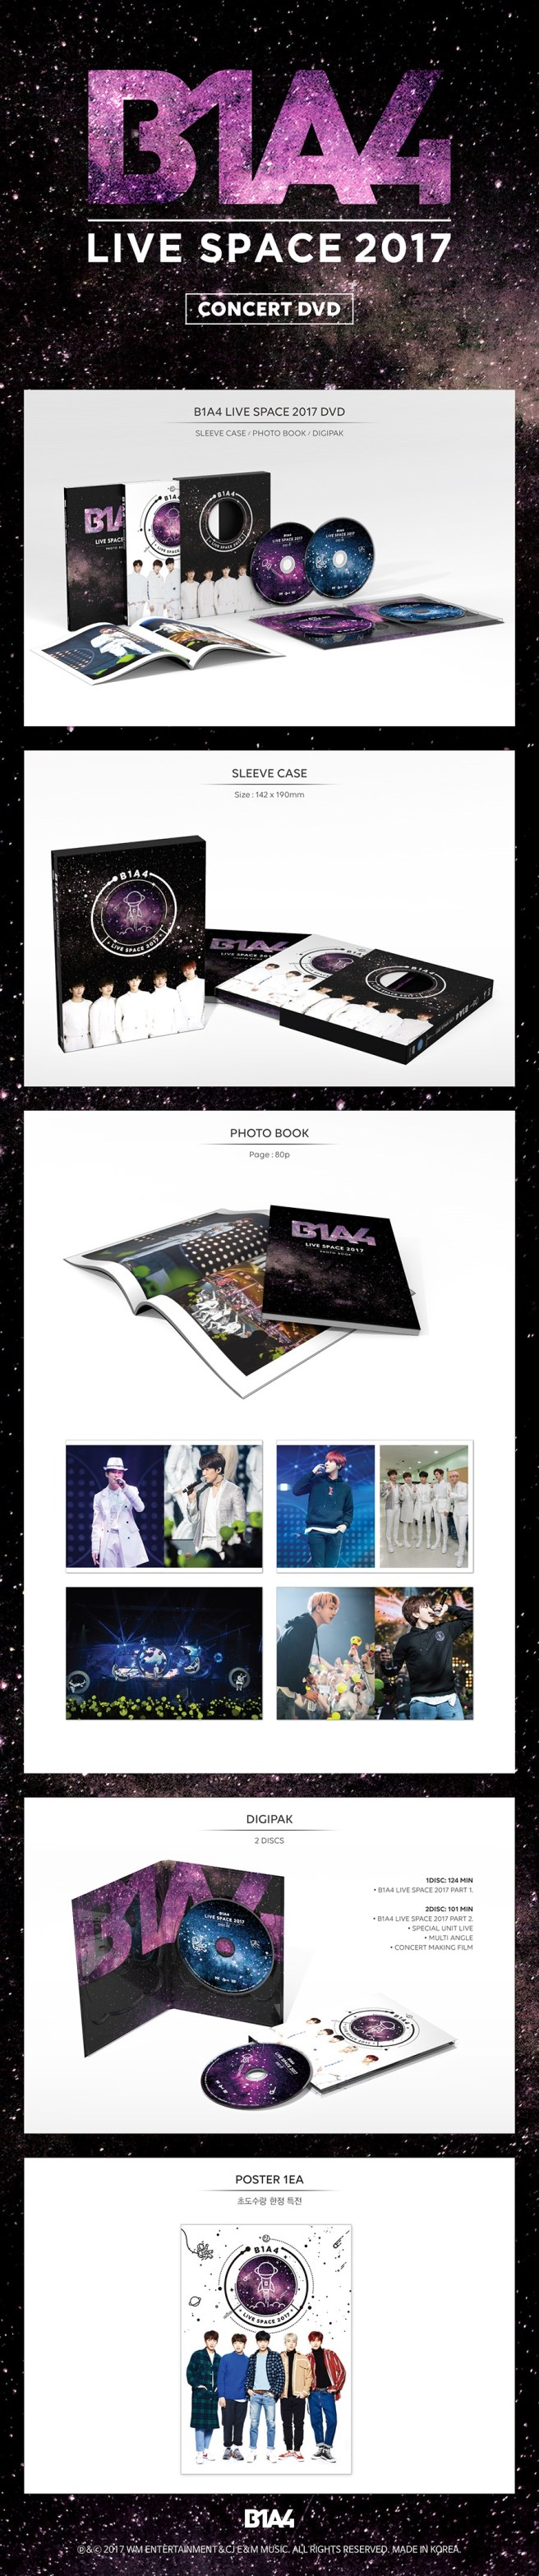 B1A4 - LIVE SPACE 2017 DVD Preview